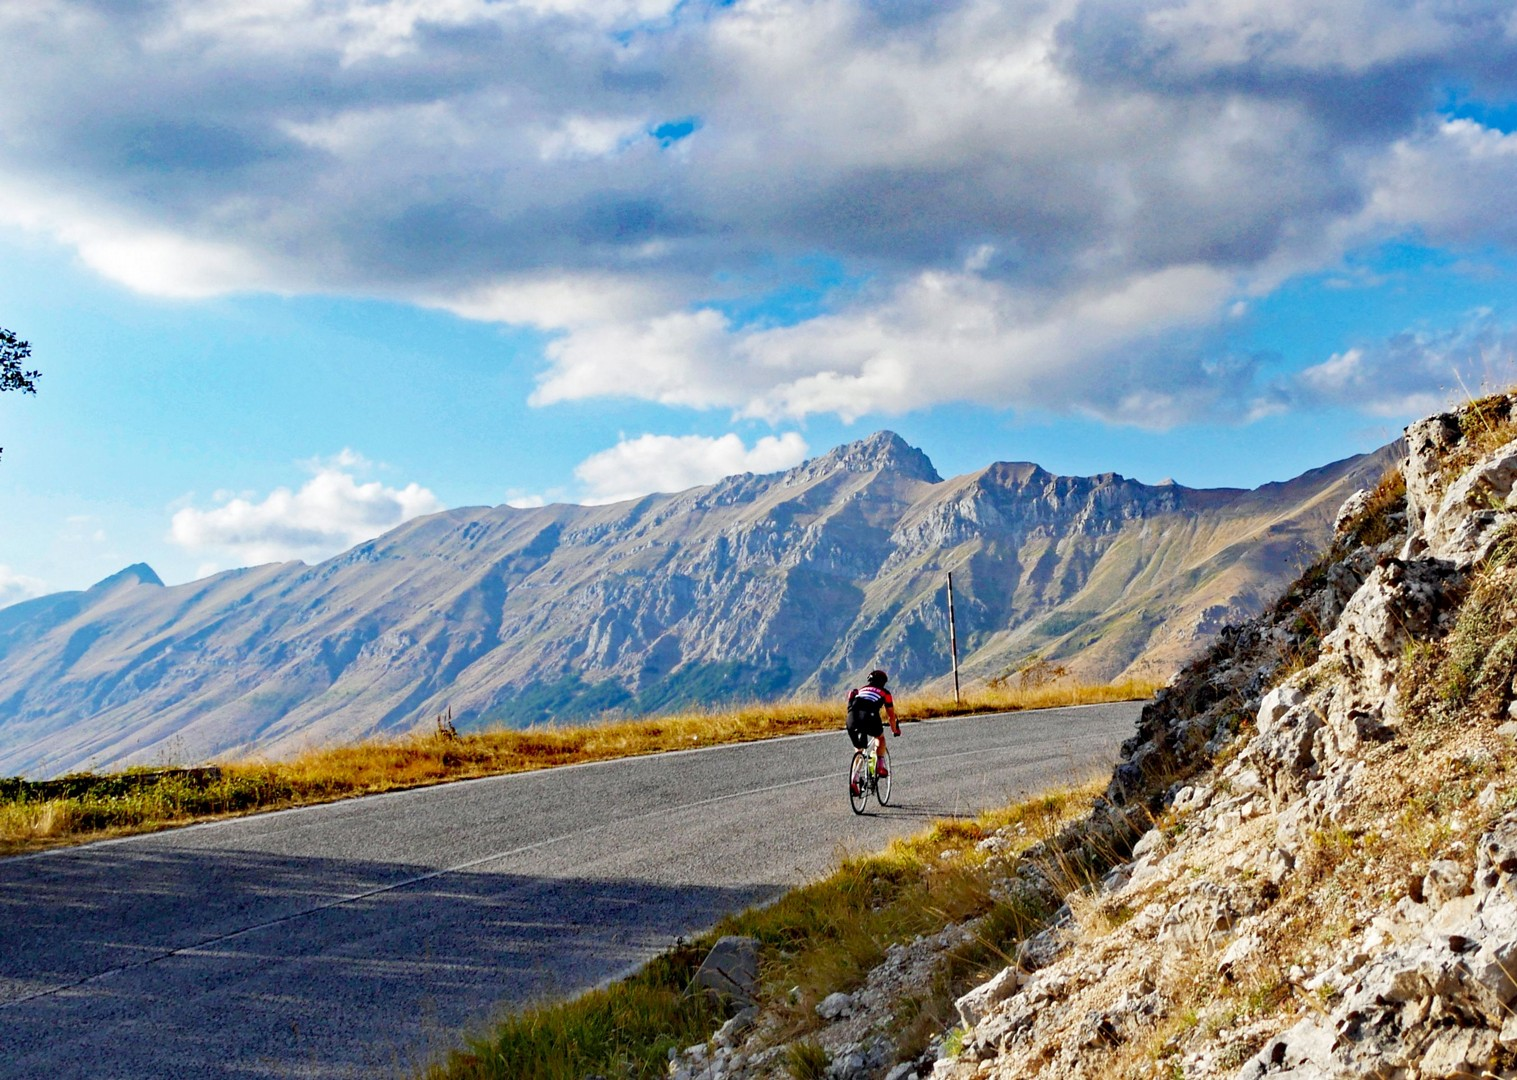 guided-road-cycling-adventure-north-to-south-italy.jpg - Italy - Grand Traverse - North to South - Guided Road Cycling Holiday (17 days) - Road Cycling